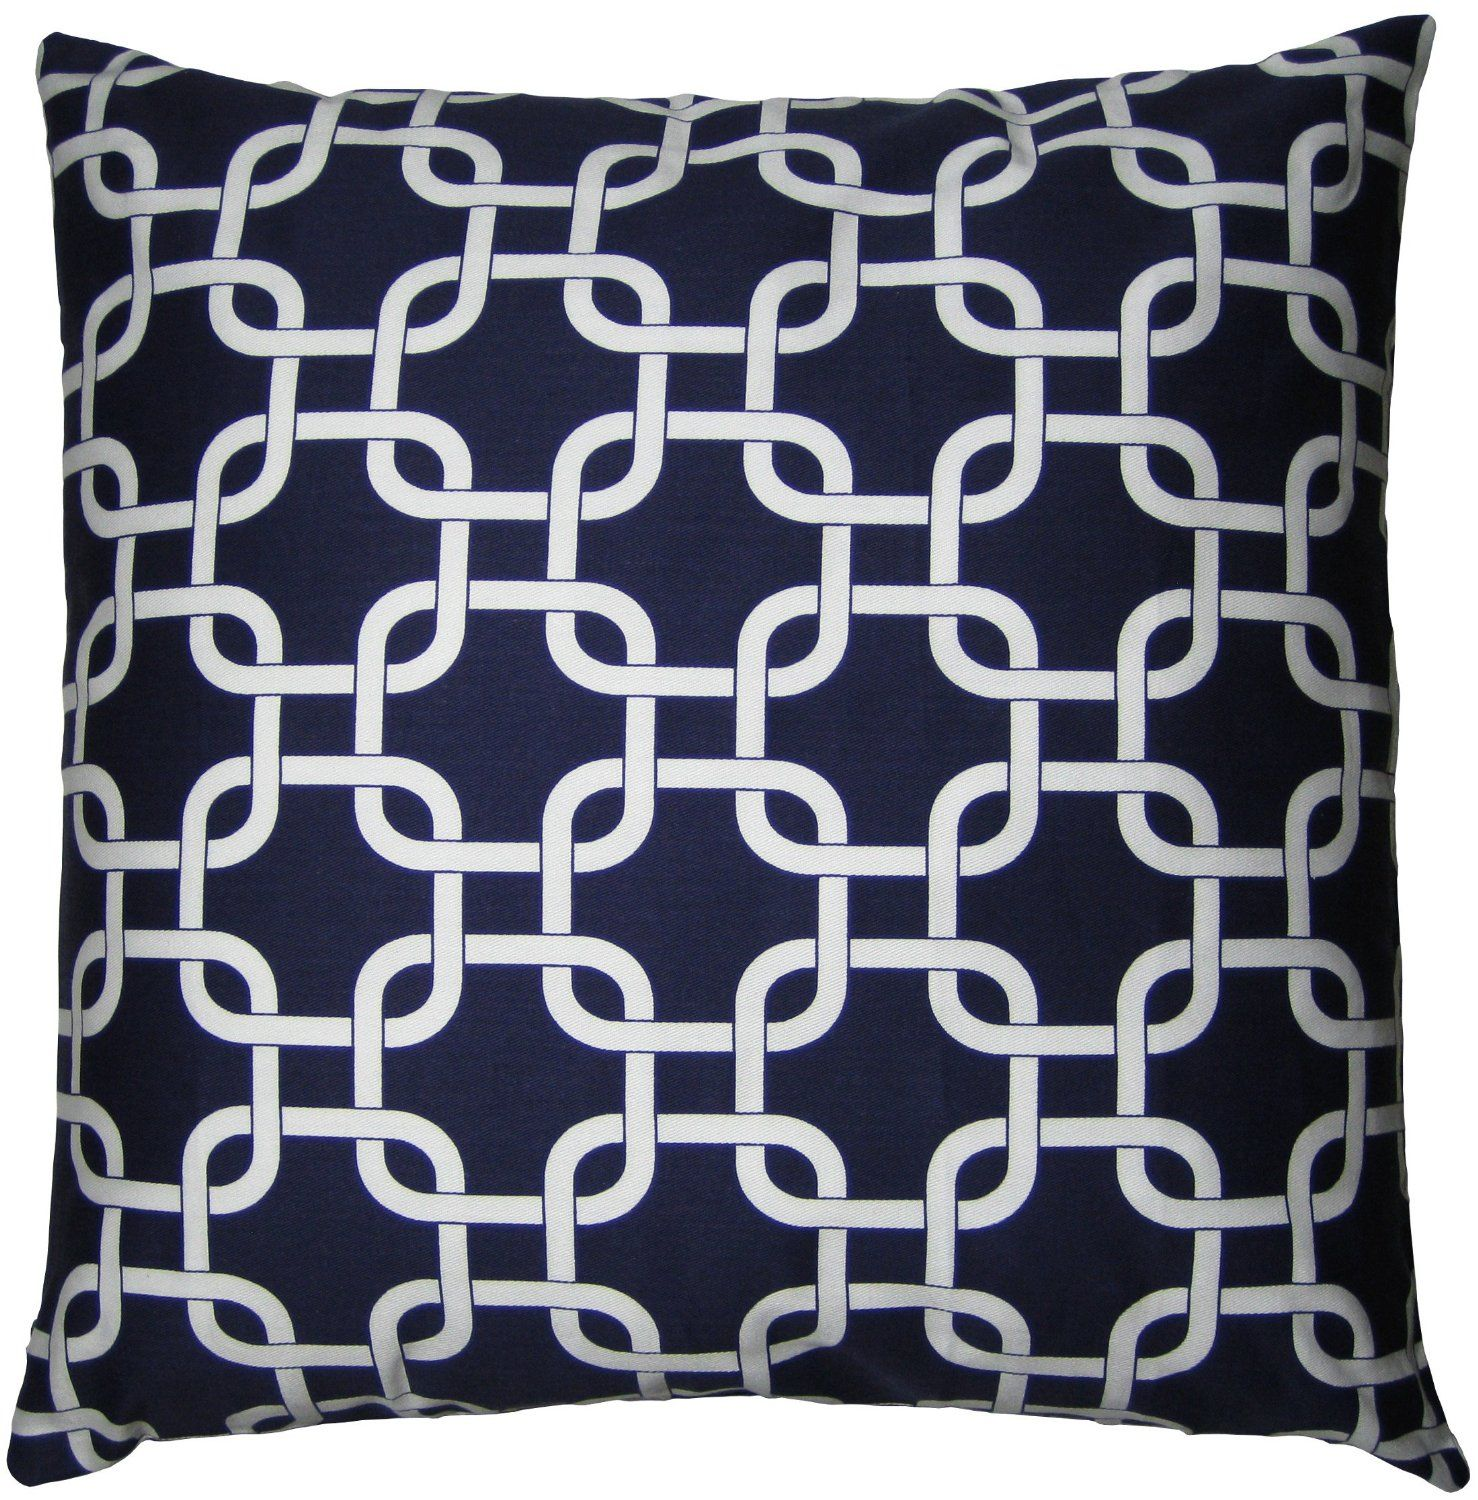 Throw Pillow Inserts 18 X 18 : Throw Pillow Inserts 18x18. Pellon Decorative Pillow Inserts 18inch X 18inch Set Of 4 Free ...